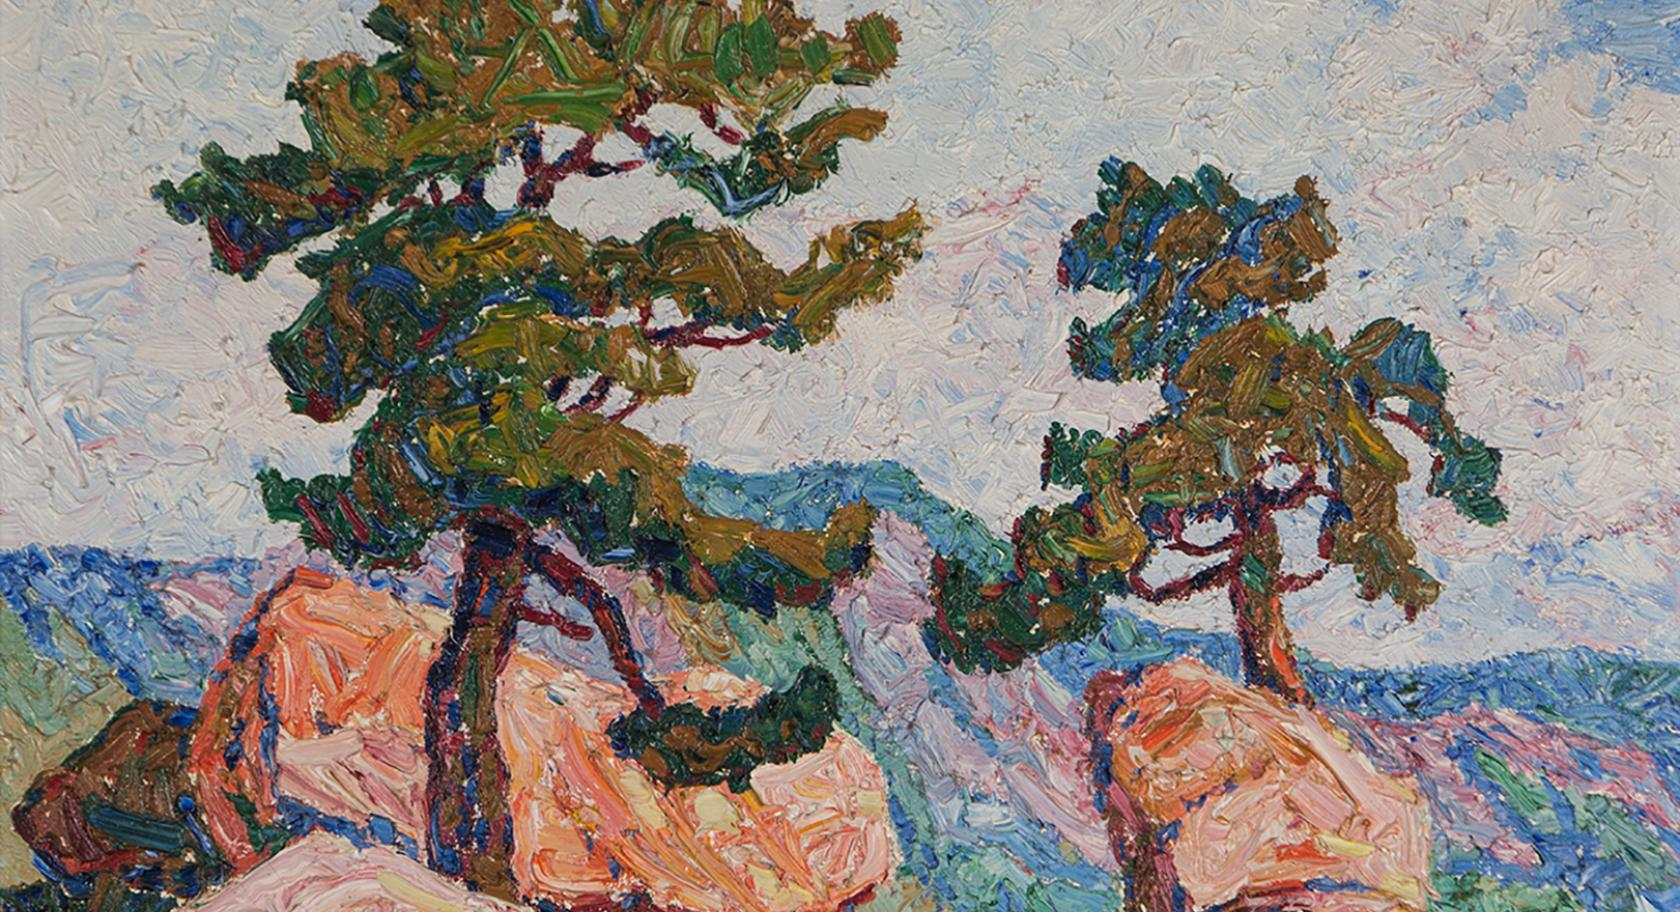 Sven Birger Sandzén, (American, born Sweden, 1871-1954), Two Pines. Manitou, Colorado, 1921, oil on canvas, 17 1/8 x 23 7/8 in., gift of Mr. and Mrs. J.D. Stewart, UMFA2017.4.1.